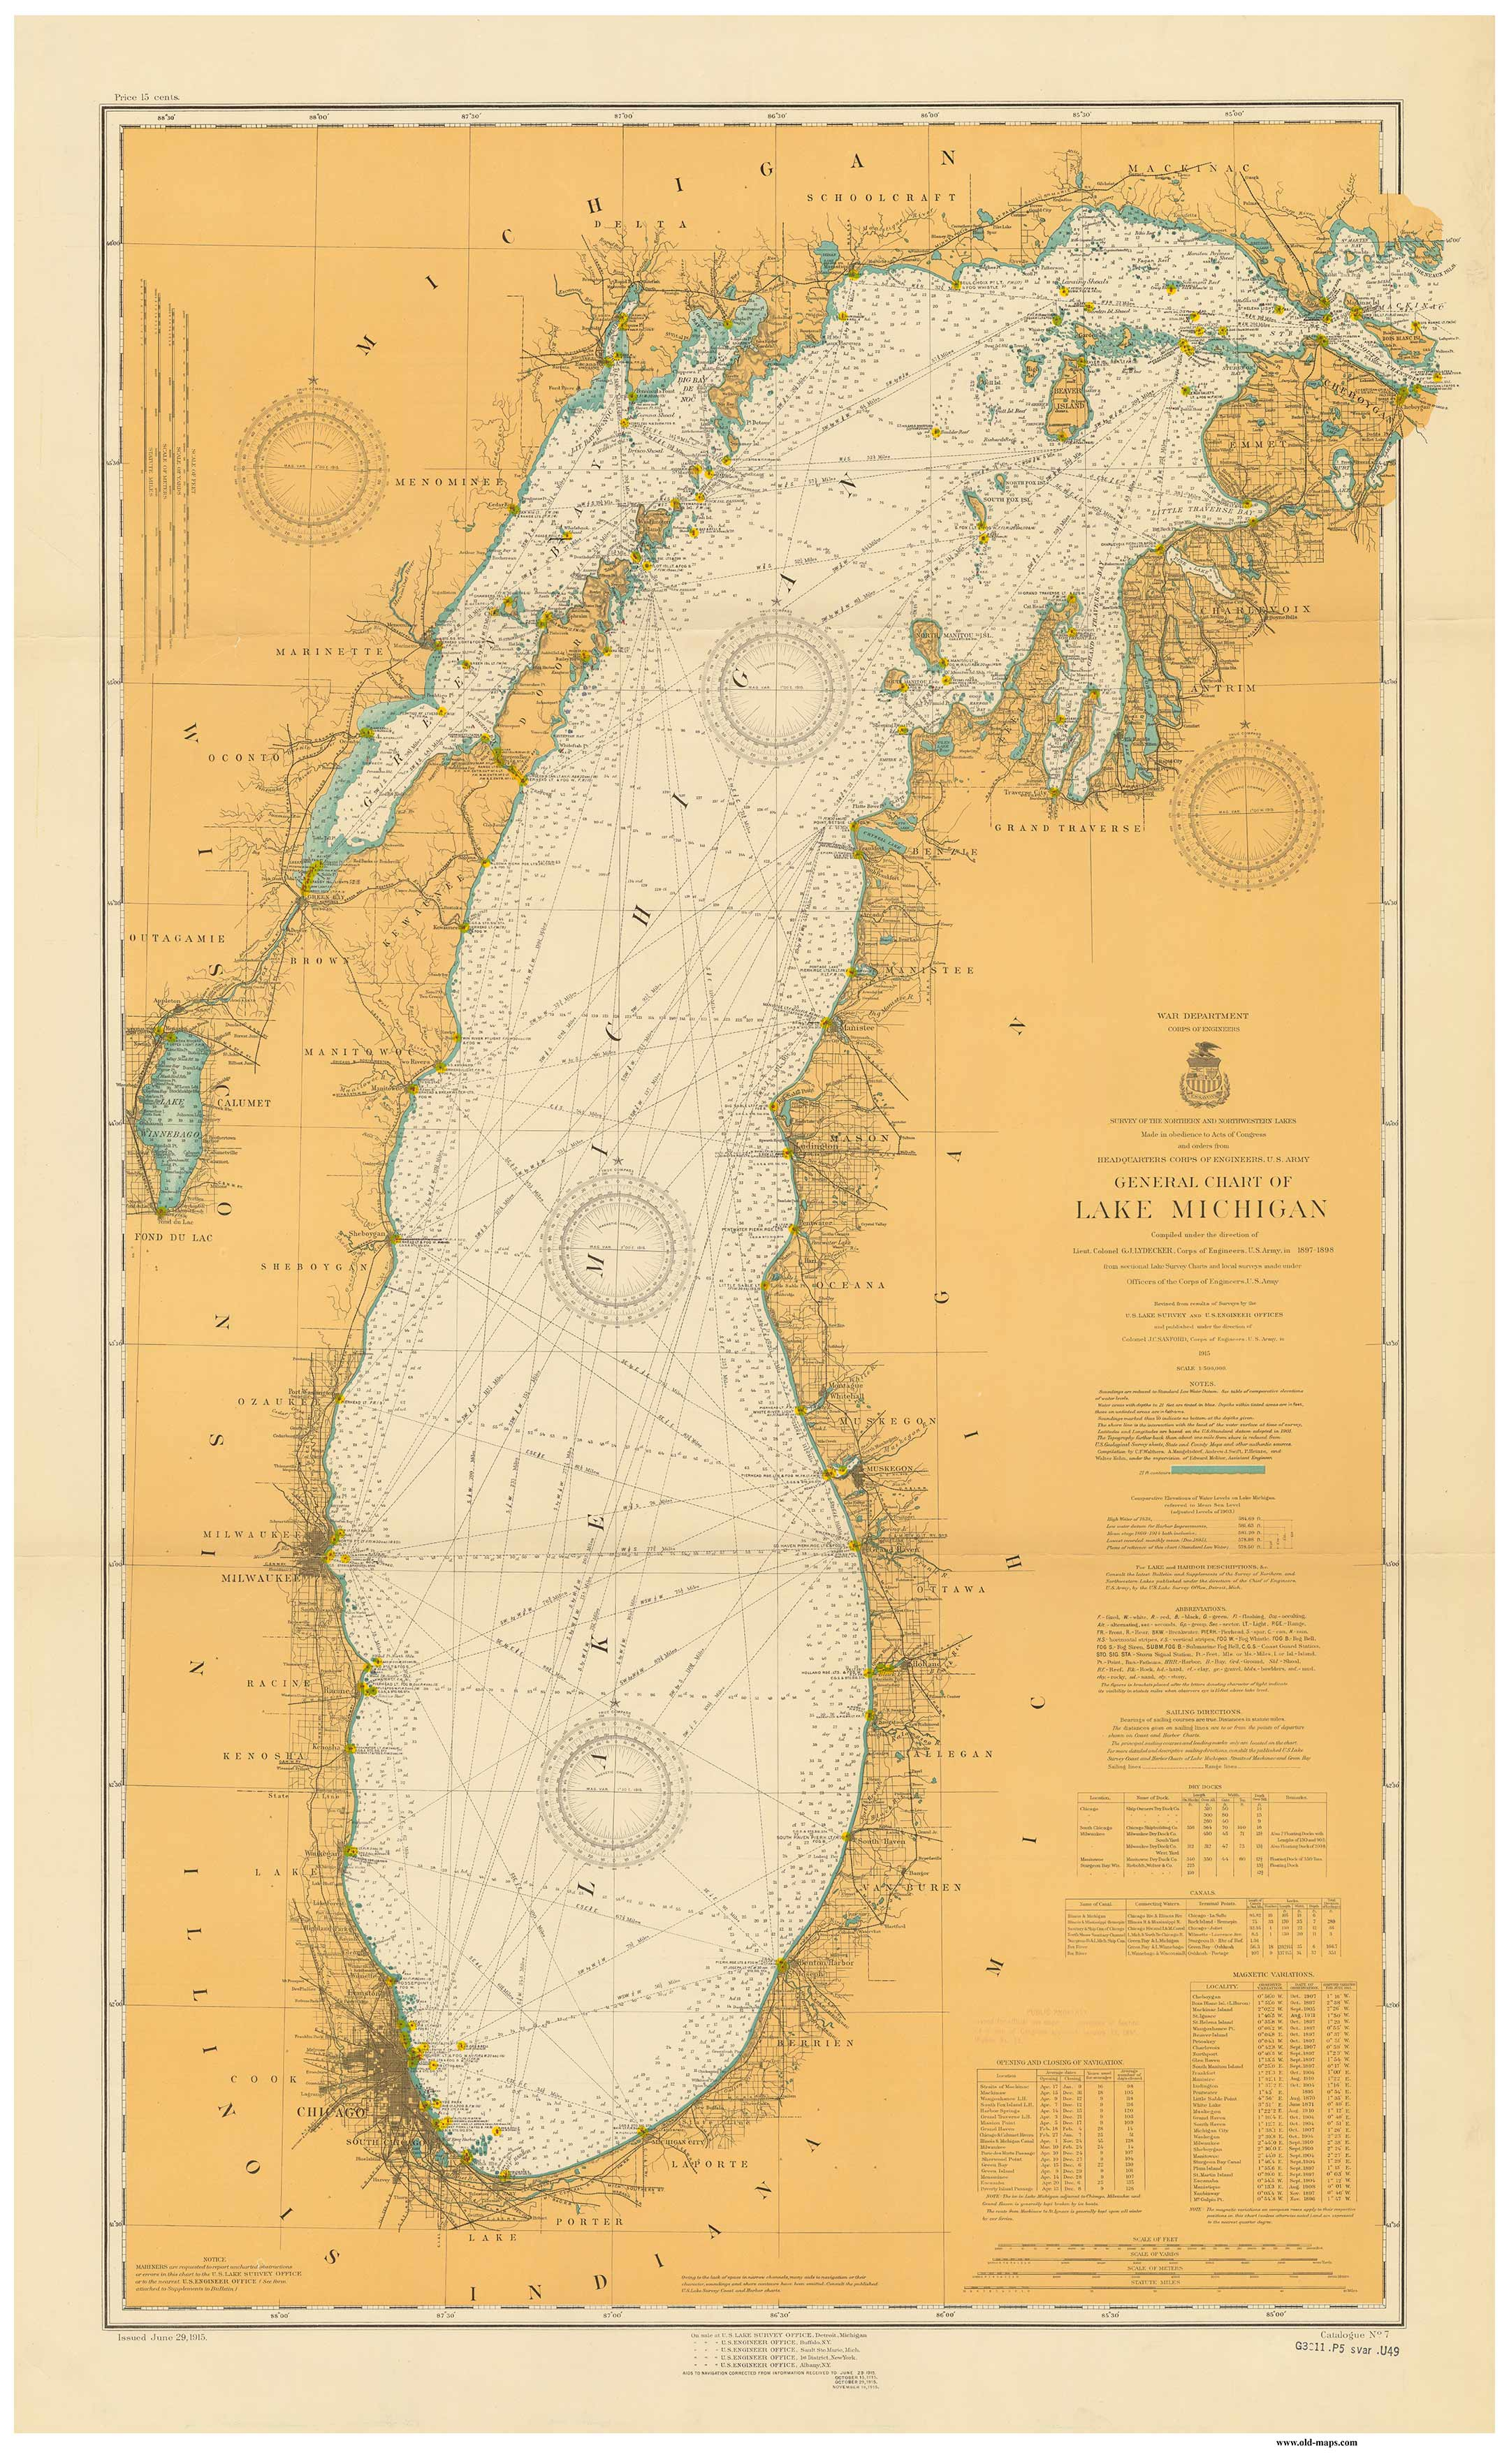 New York Historical Nautical Charts - Michigan lake maps